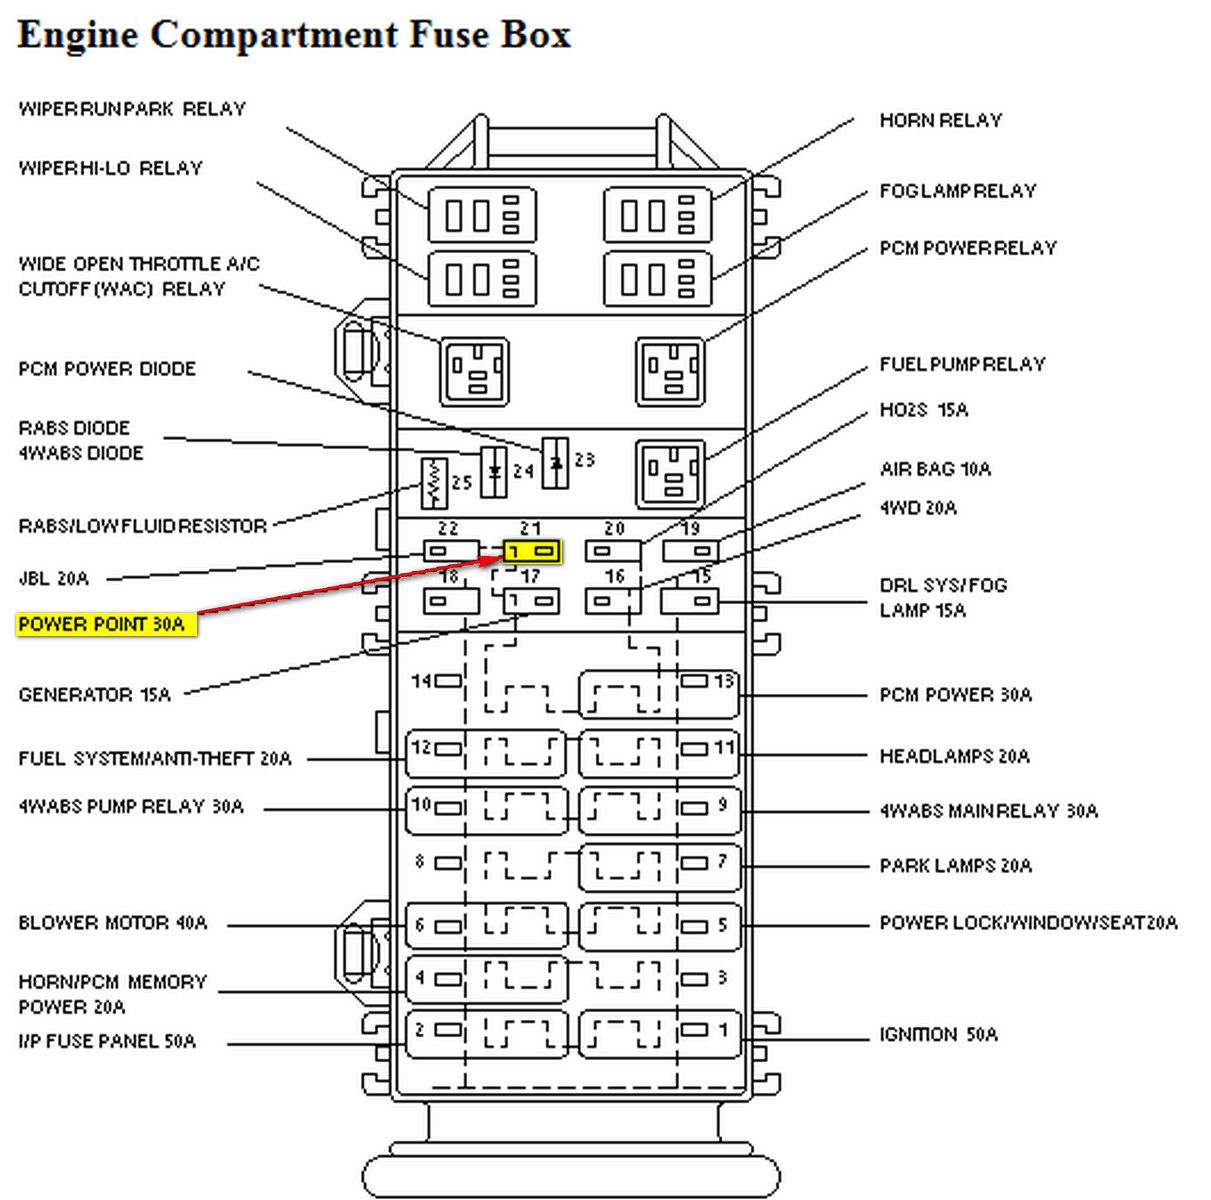 97 f250 fuse panel diagram wiring diagram schematics 1997 explorer wont shift into 4wd 1997 explorer fuse panel diagram [ 1211 x 1200 Pixel ]